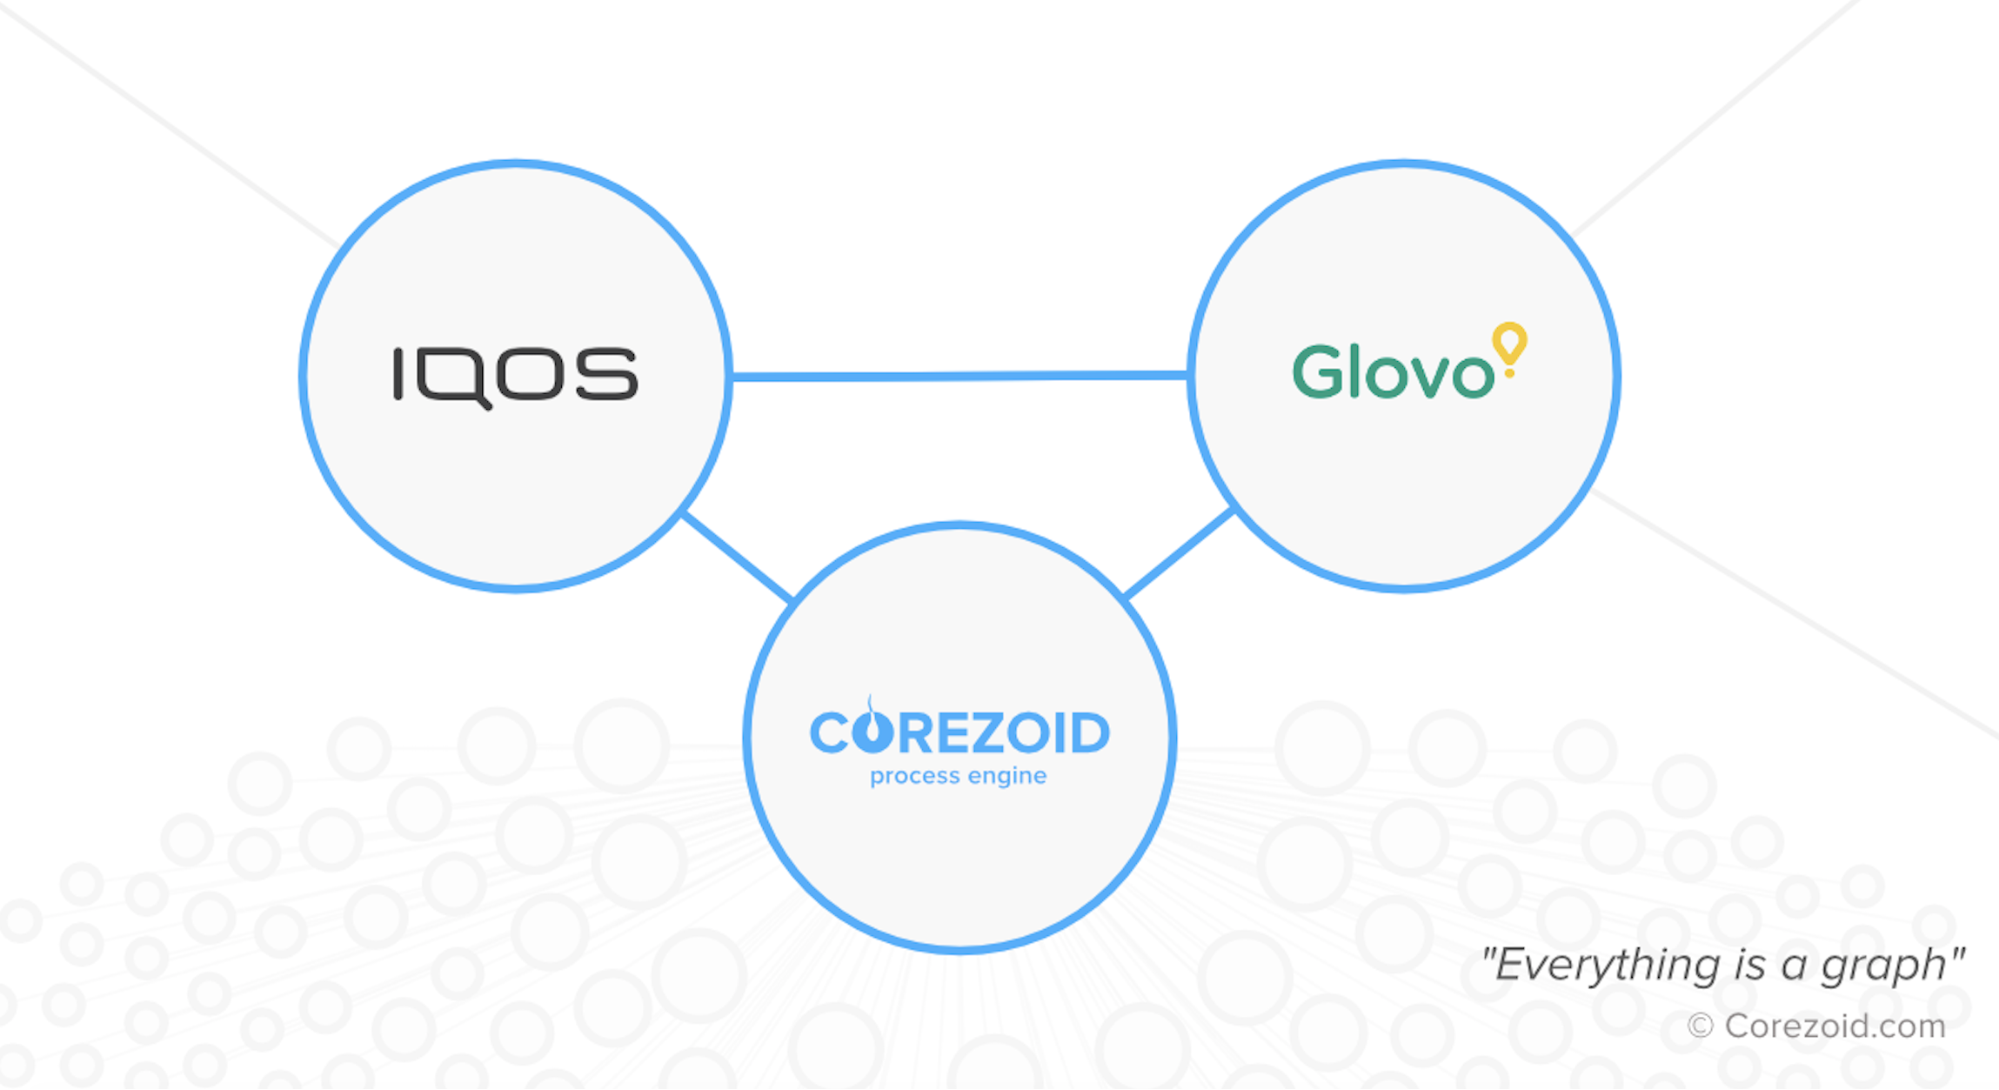 Glovo and IQOS announced partnership and launched the delivery of sticks and gadgets